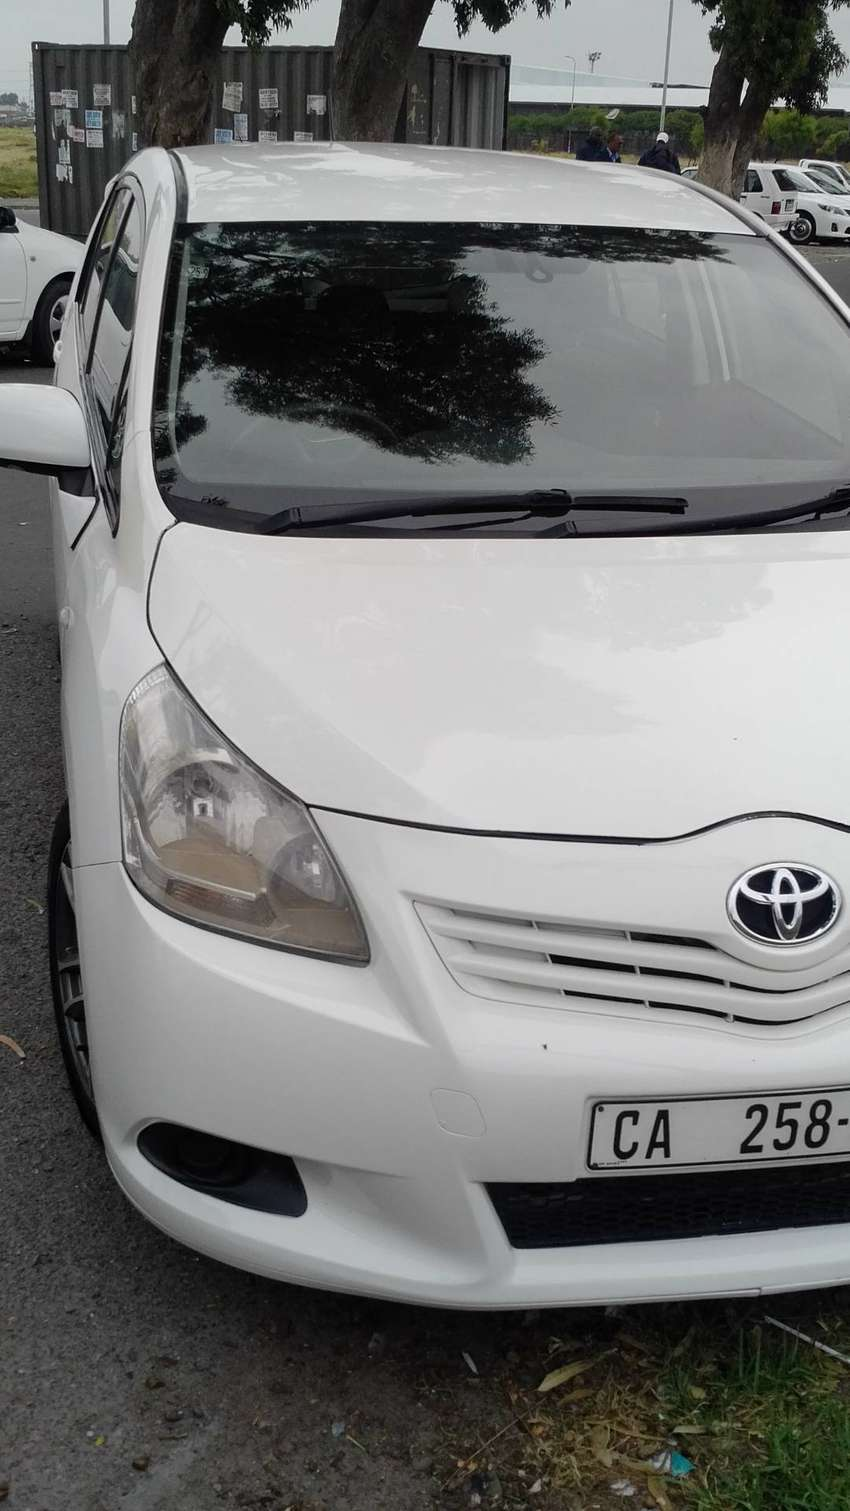 I m seling my car 2011 Toyota Corolla Verso 160 with ONLY 118236kms 0